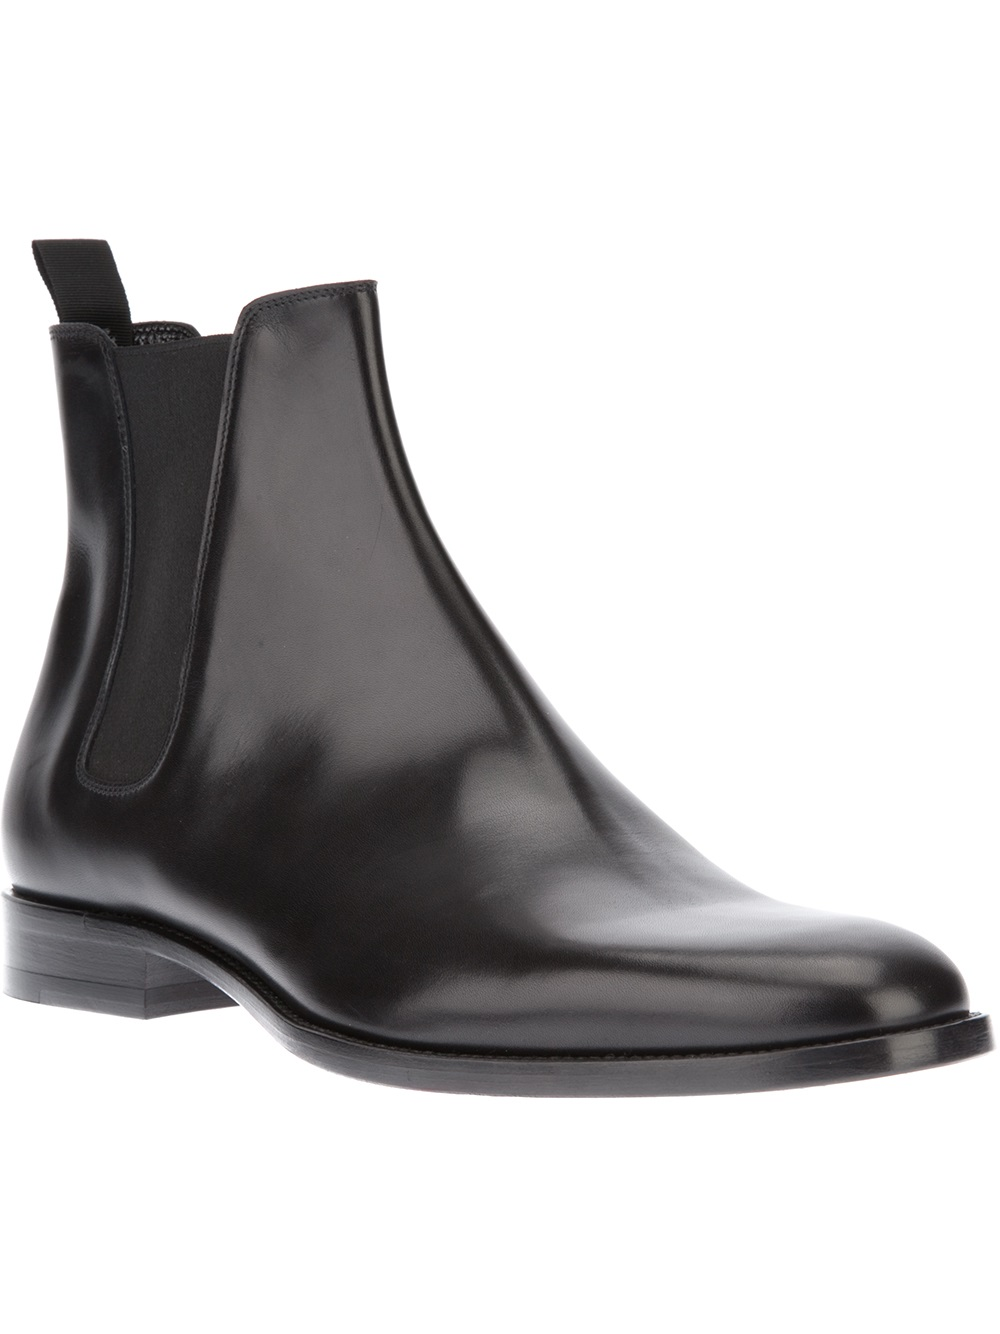 Lyst - Saint Laurent Chelsea Boot in Black for Men fb56d9fe1b95